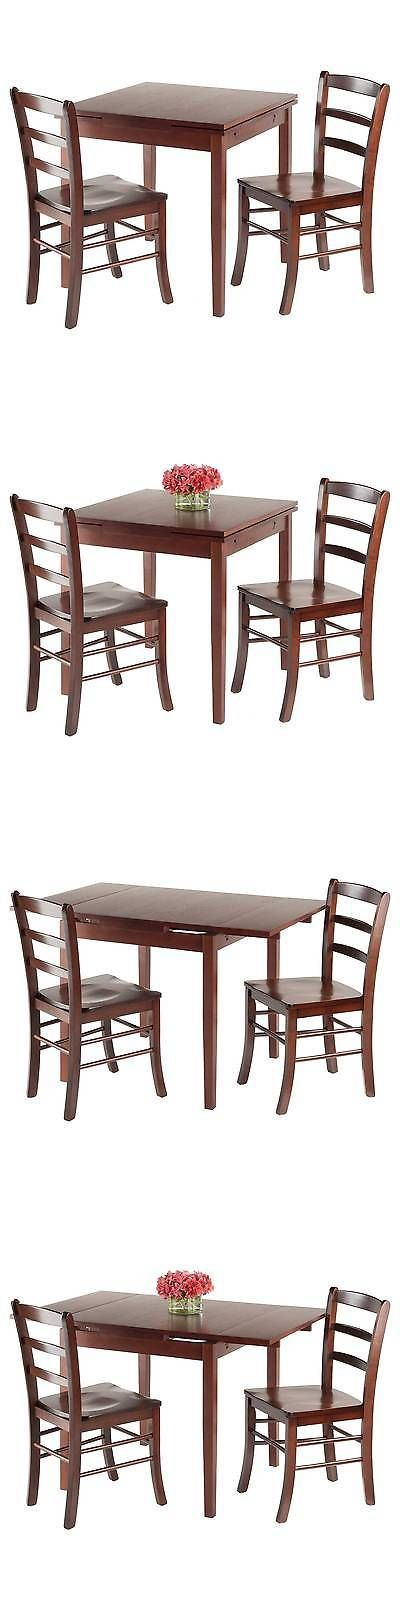 Sets 98478: 3 Piece Pulman Set Extension Table With Ladder Back Chairs Wood/Walnut - Winsome BUY IT NOW ONLY: $235.99